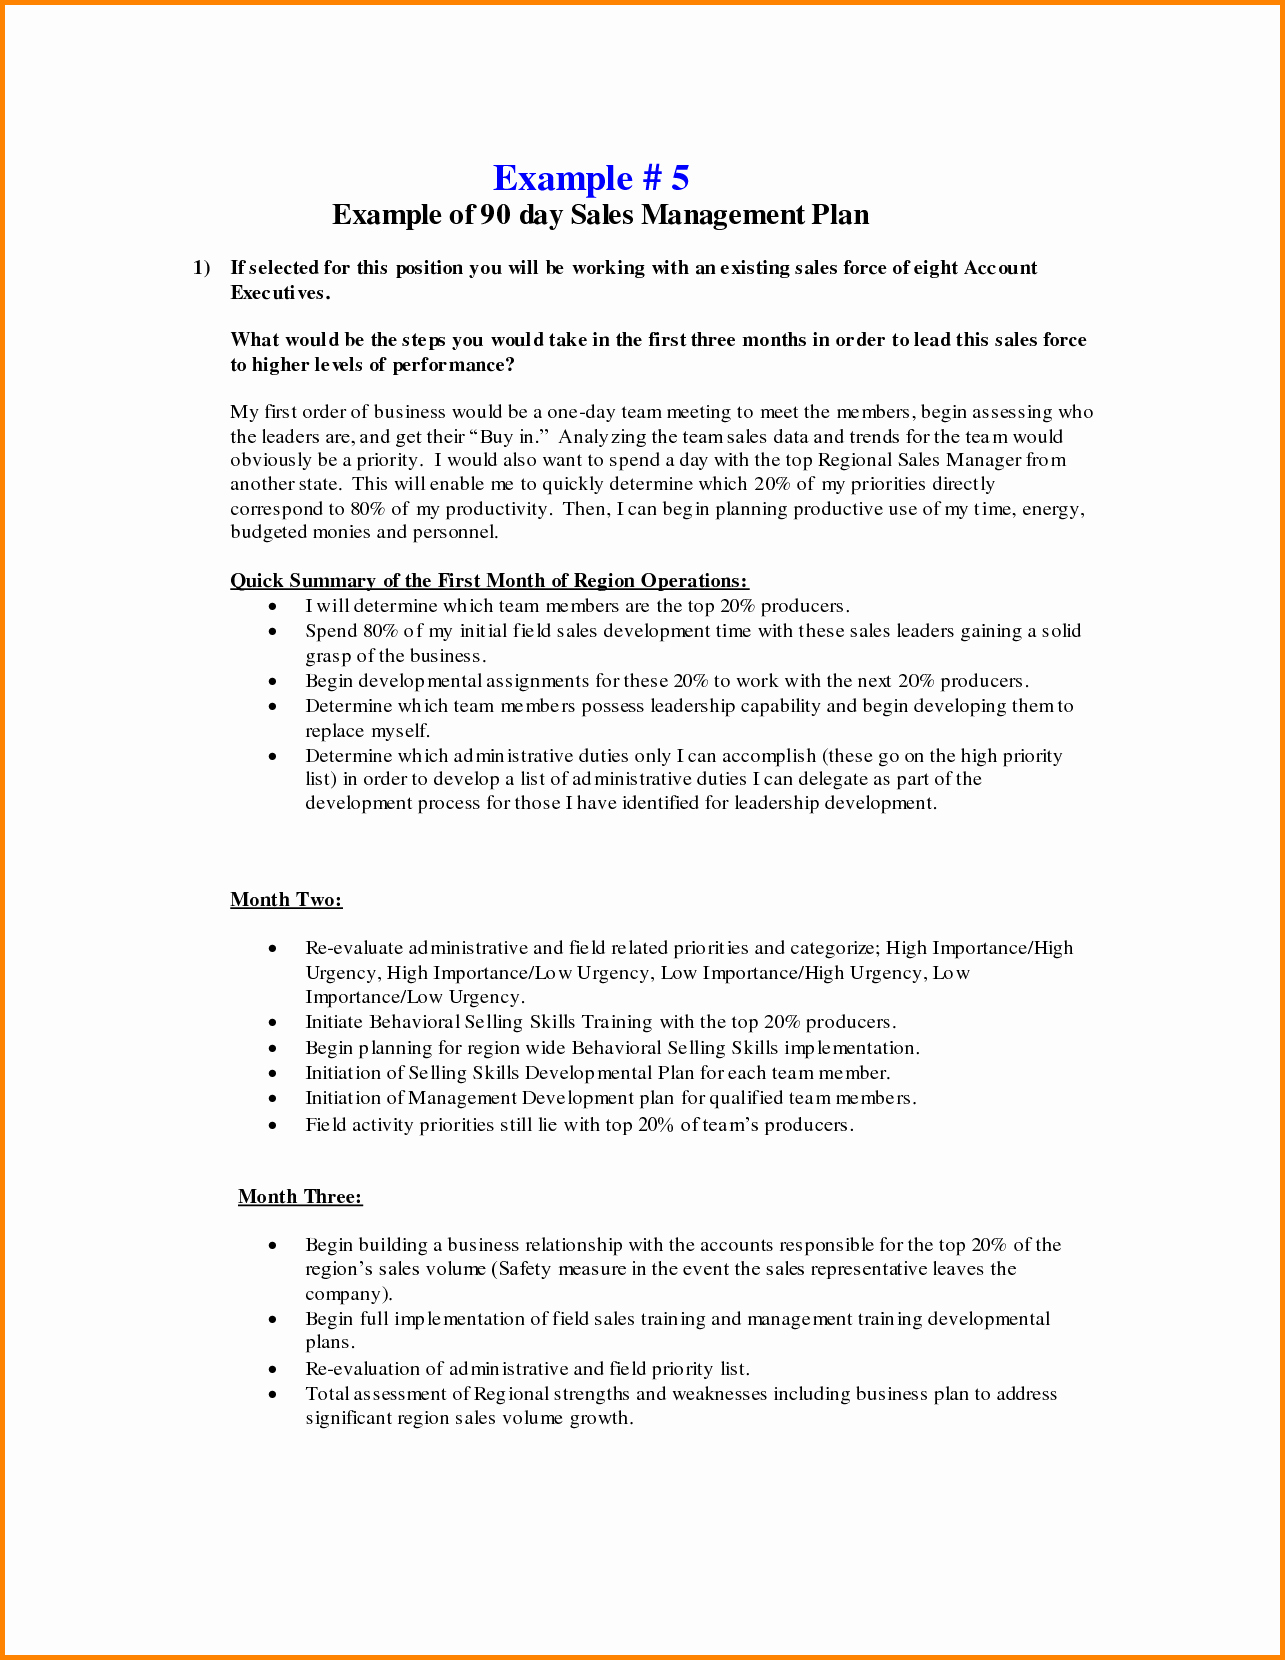 Otes Lesson Plan Template New 23 30 60 90 Day Plan Templates Pdf – 90 Day